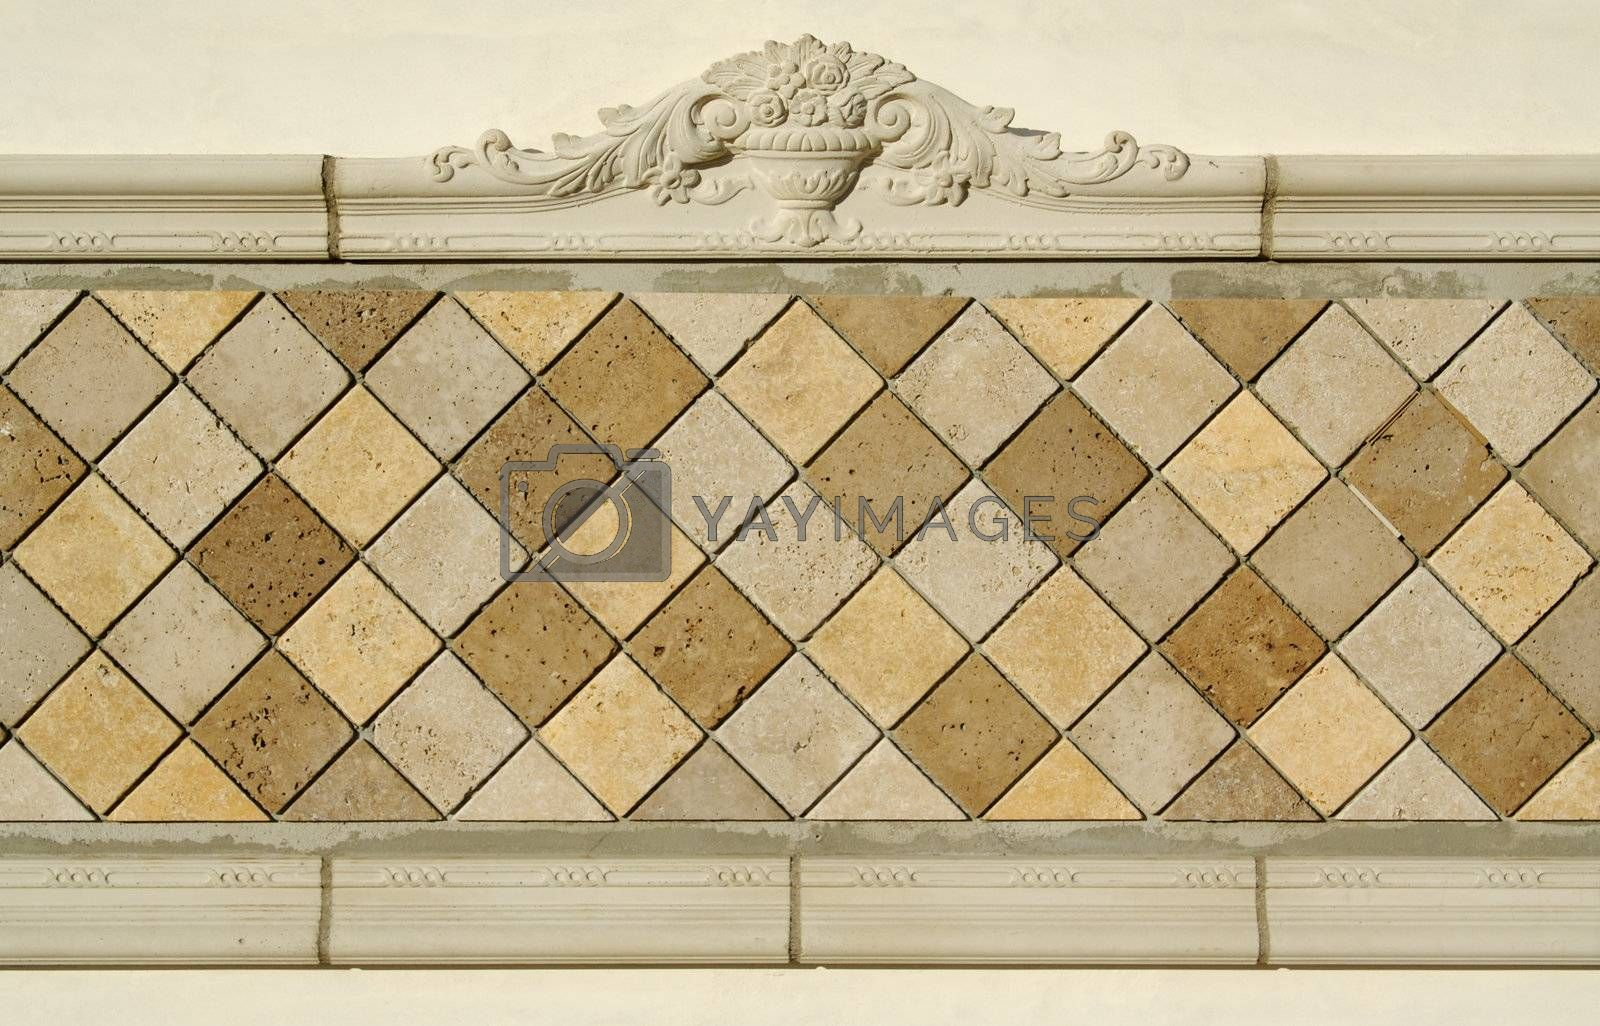 Ornate Tiled Blank Wall Sign Ready for Your Message